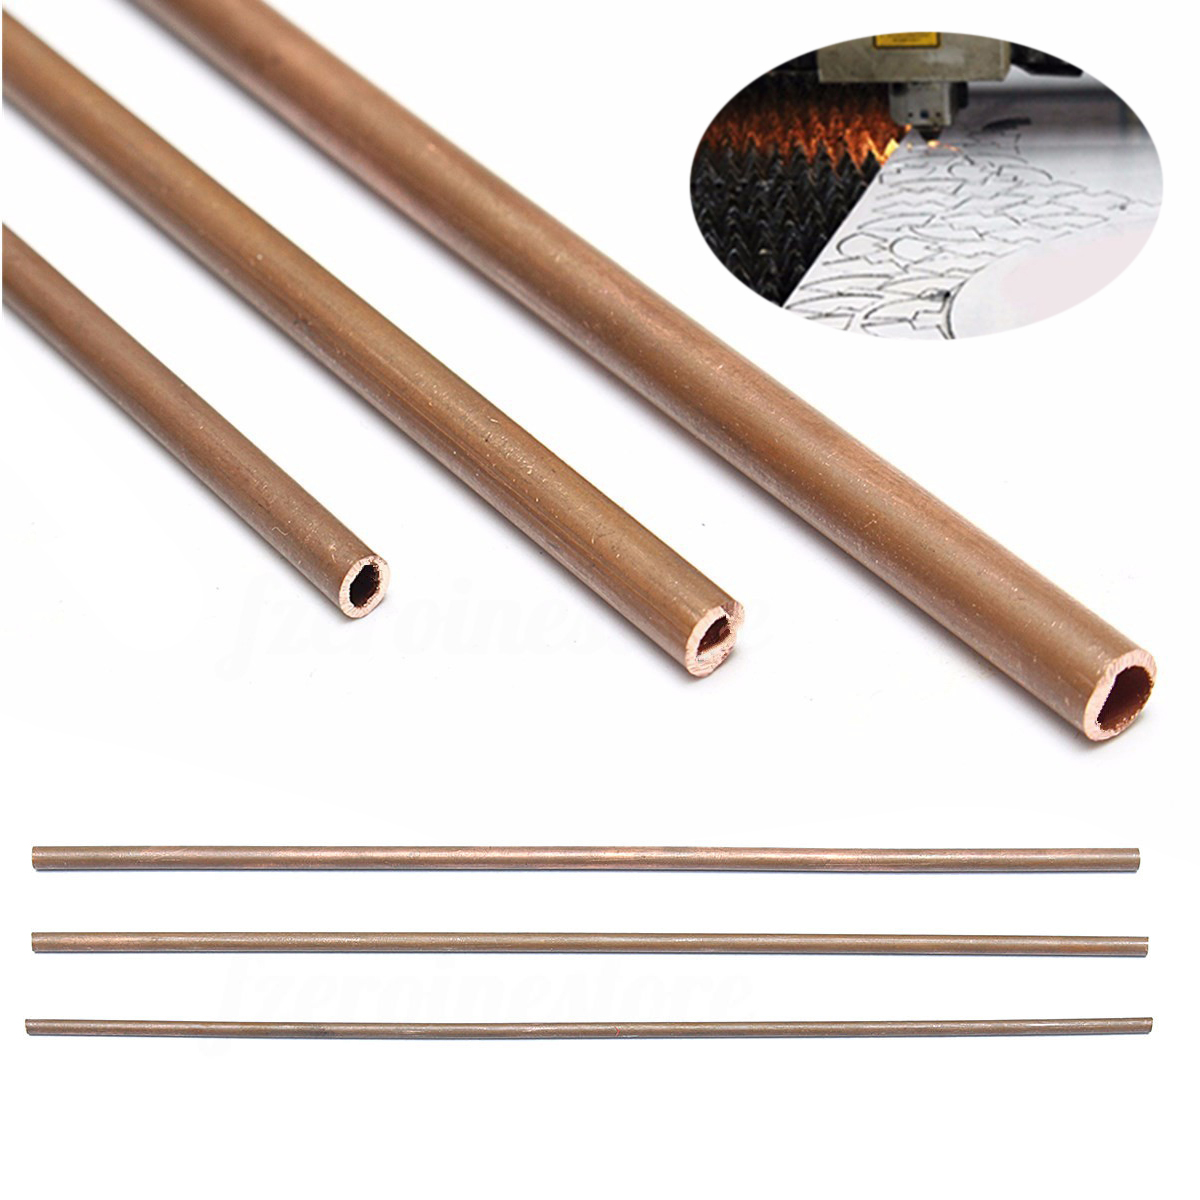 High Quality Copper Tube Plumbing Pipe/Tube DIY Rod 3mm - 5mm Inner Diameter 300mm Length